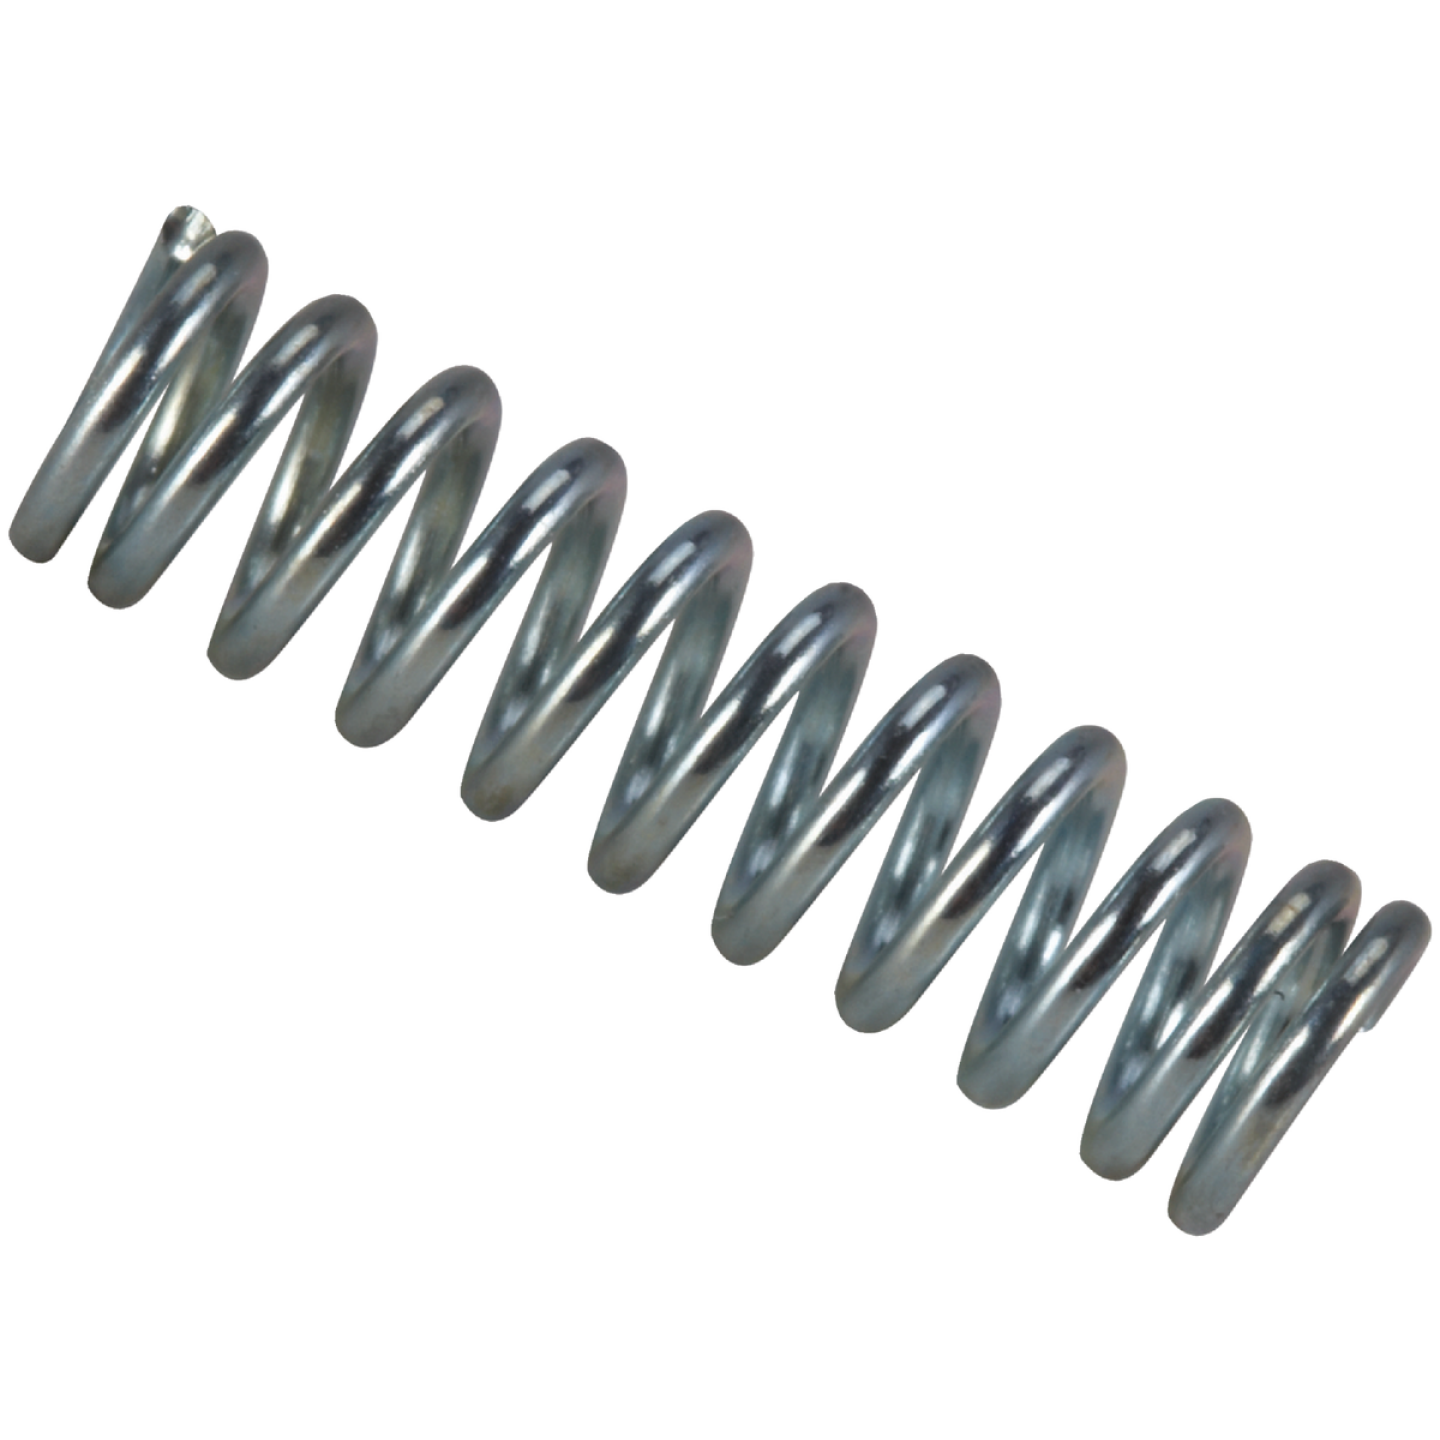 Century Spring 1 In. x 7/32 In. Compression Spring (6 Count) Image 1